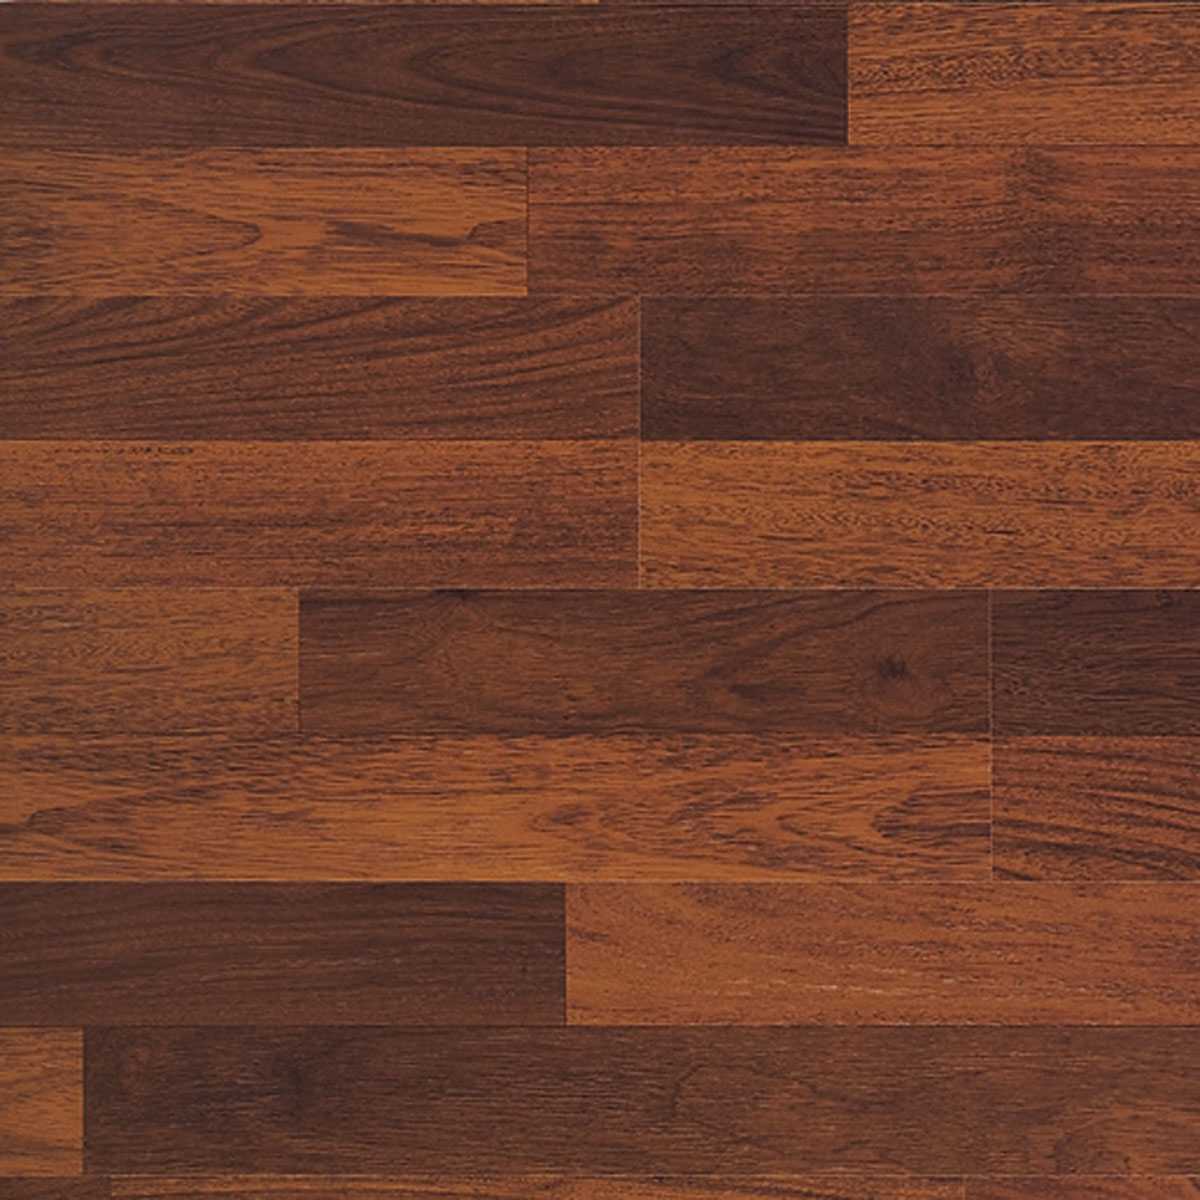 Laminate flooring hardwood and laminate flooring for Laminate floor panels